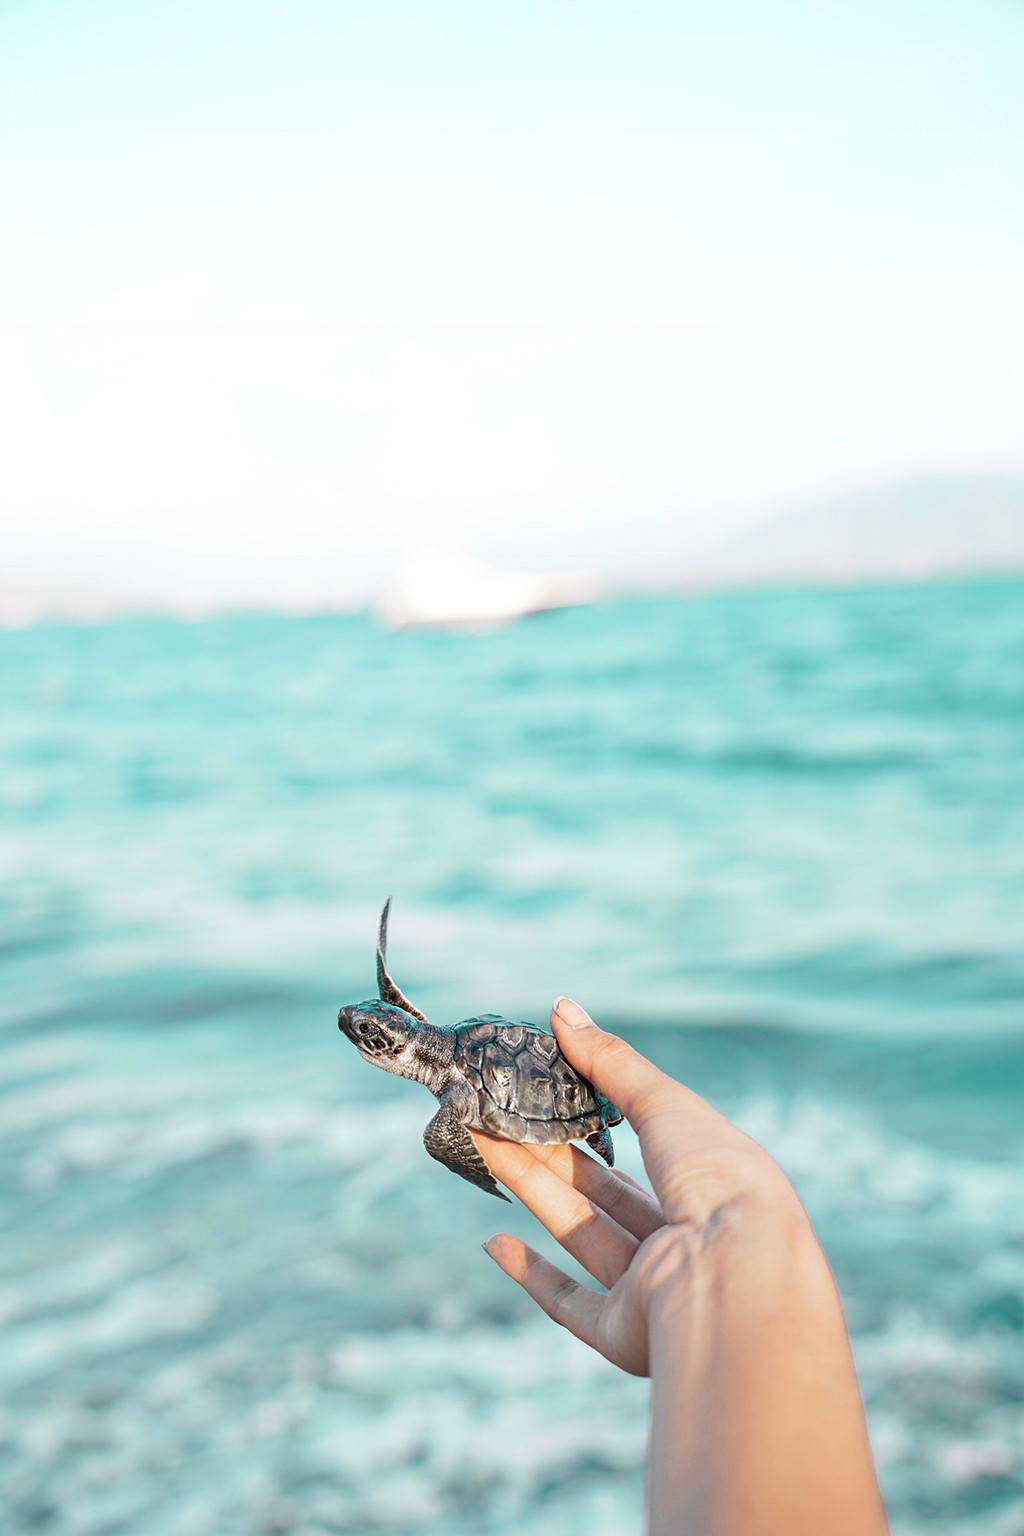 Saving Sea Turtles, The Sweet Life